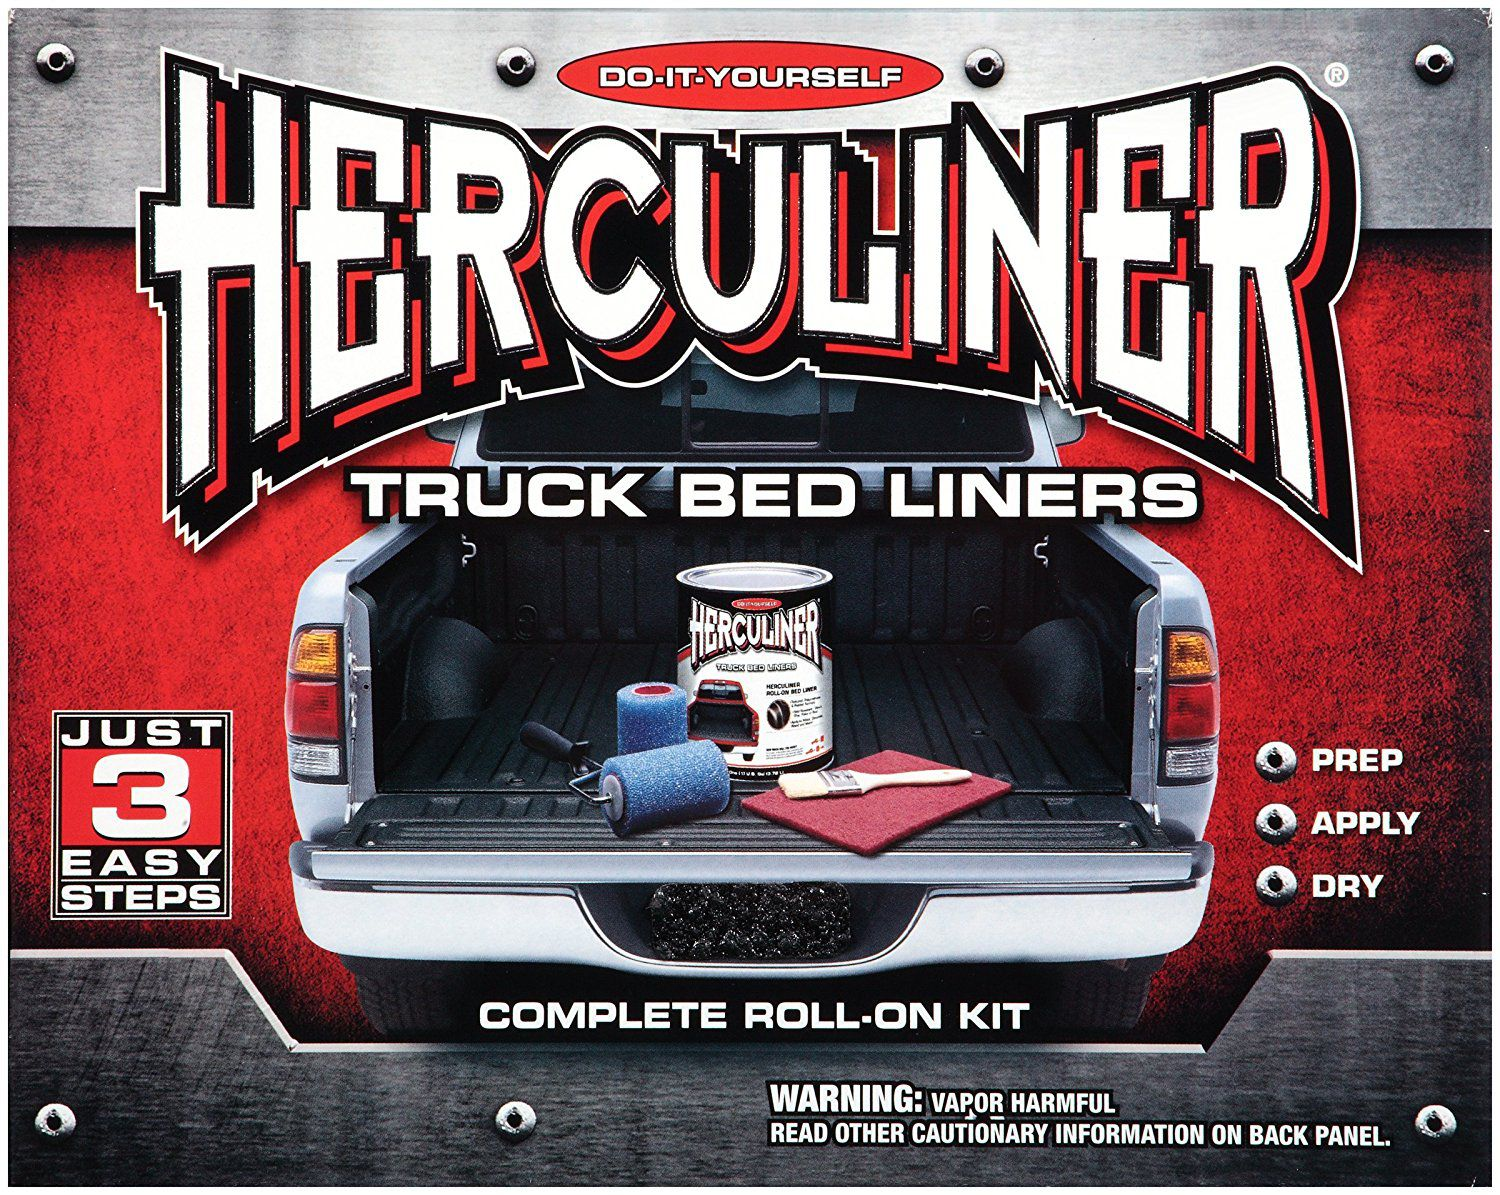 Tips For Installing A Herculiner Bed Liner Yourself Suzuki Samurai Fuel Filter Location